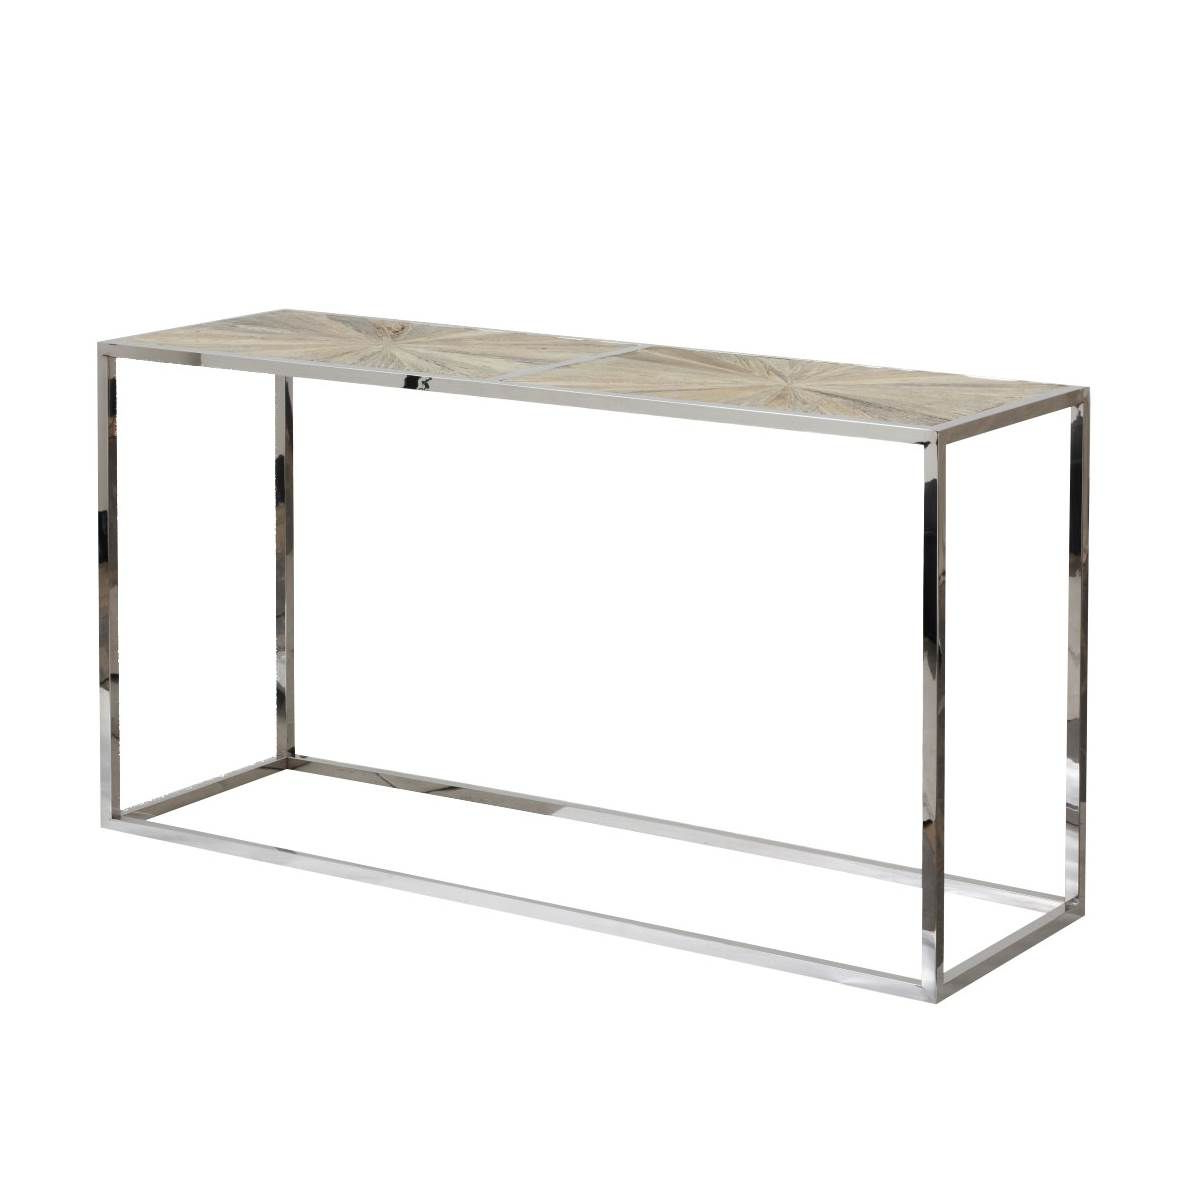 Parquet Console Table | Marshall | Pinterest With Parsons Clear Glass Top & Brass Base 48X16 Console Tables (View 11 of 20)